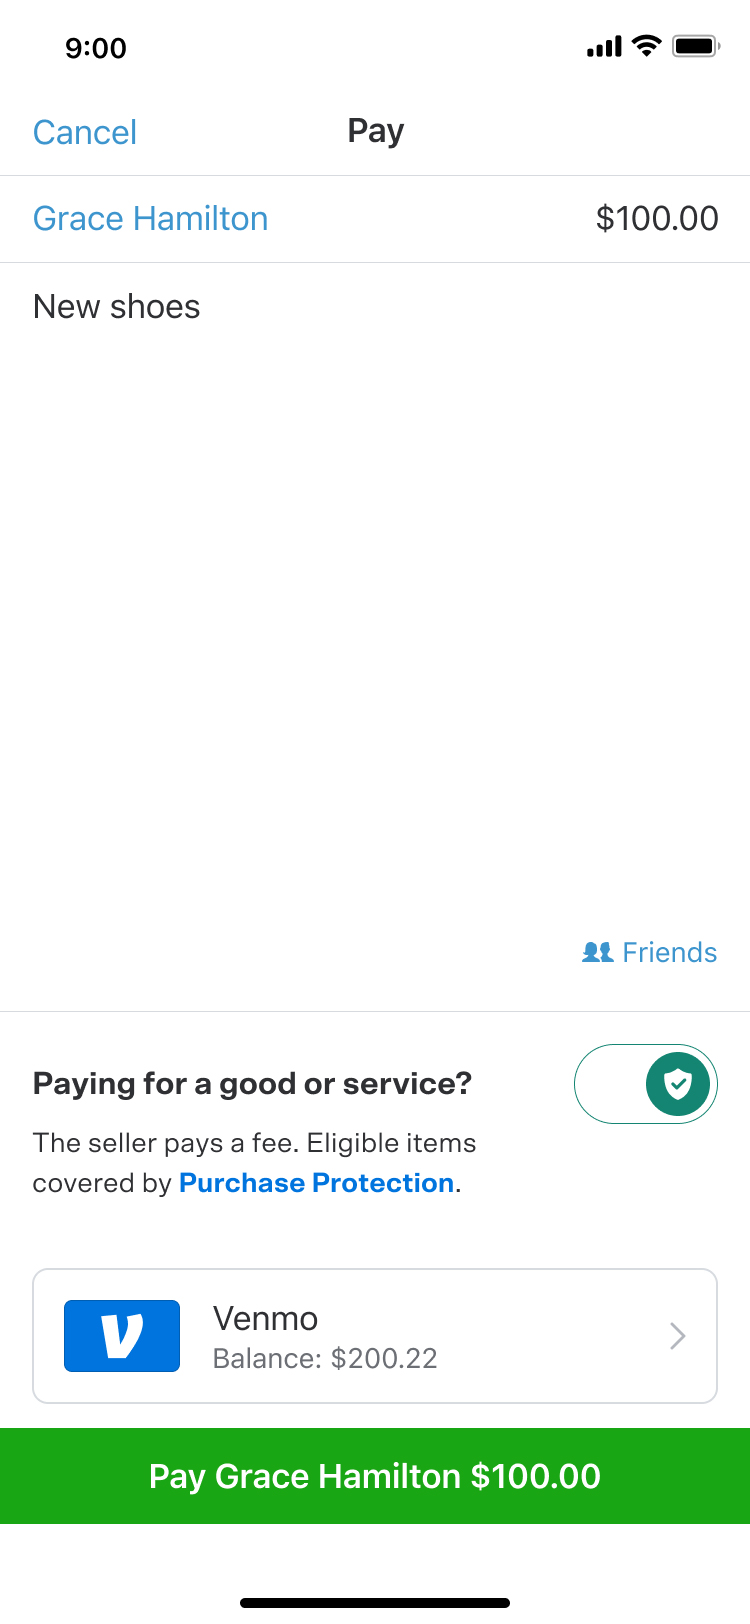 Paying for goods and services with Venmo